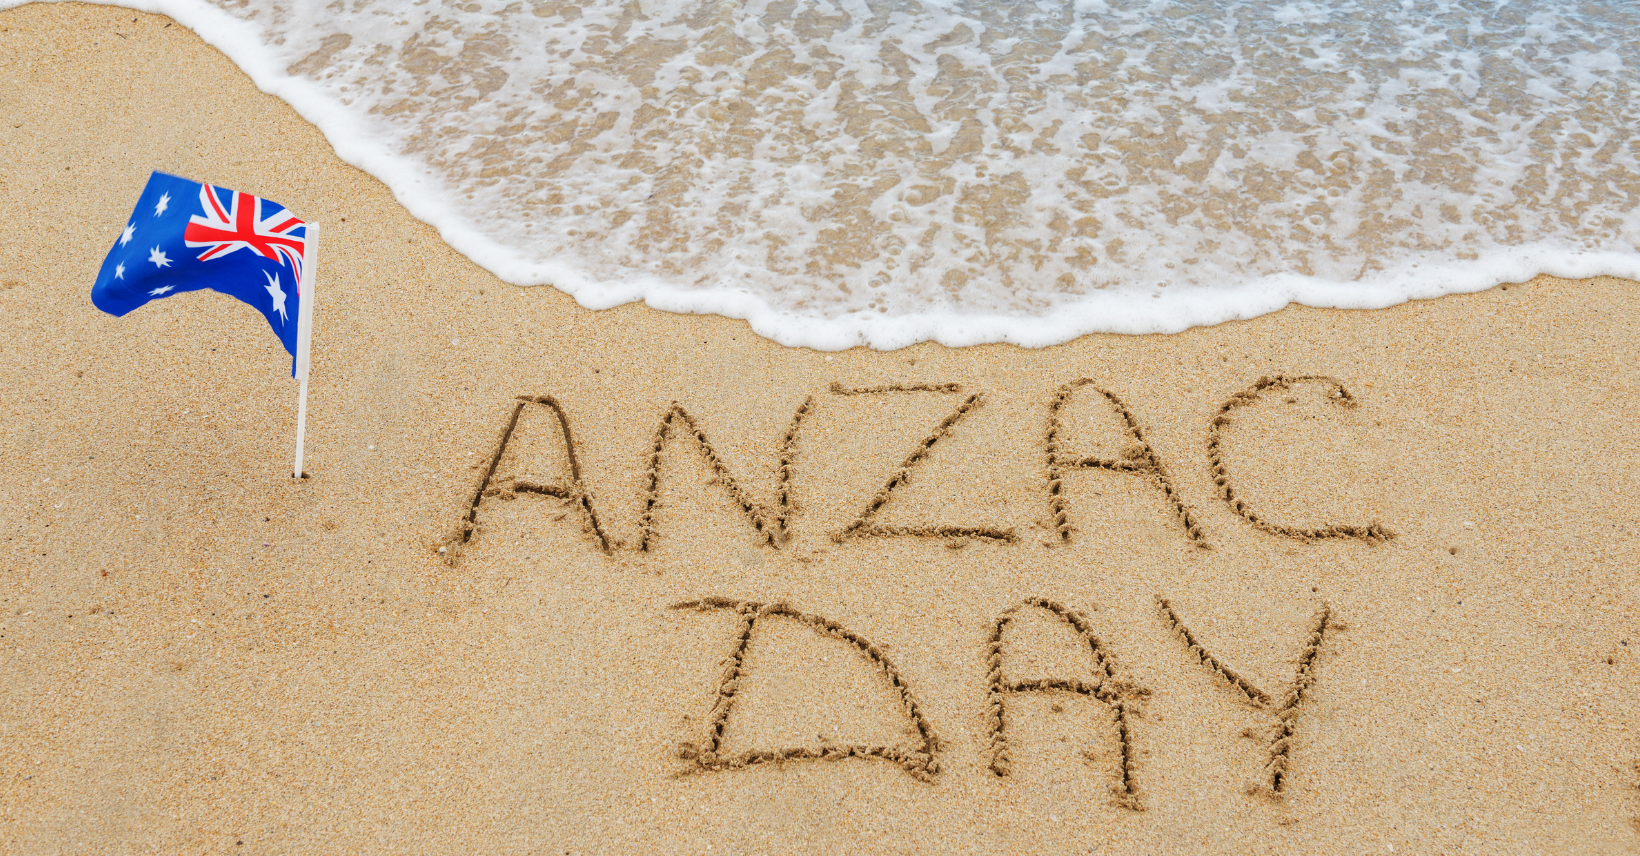 ANZAC DAY: AUSTRALIAN AND NEW ZEALAND ARMY CORPS